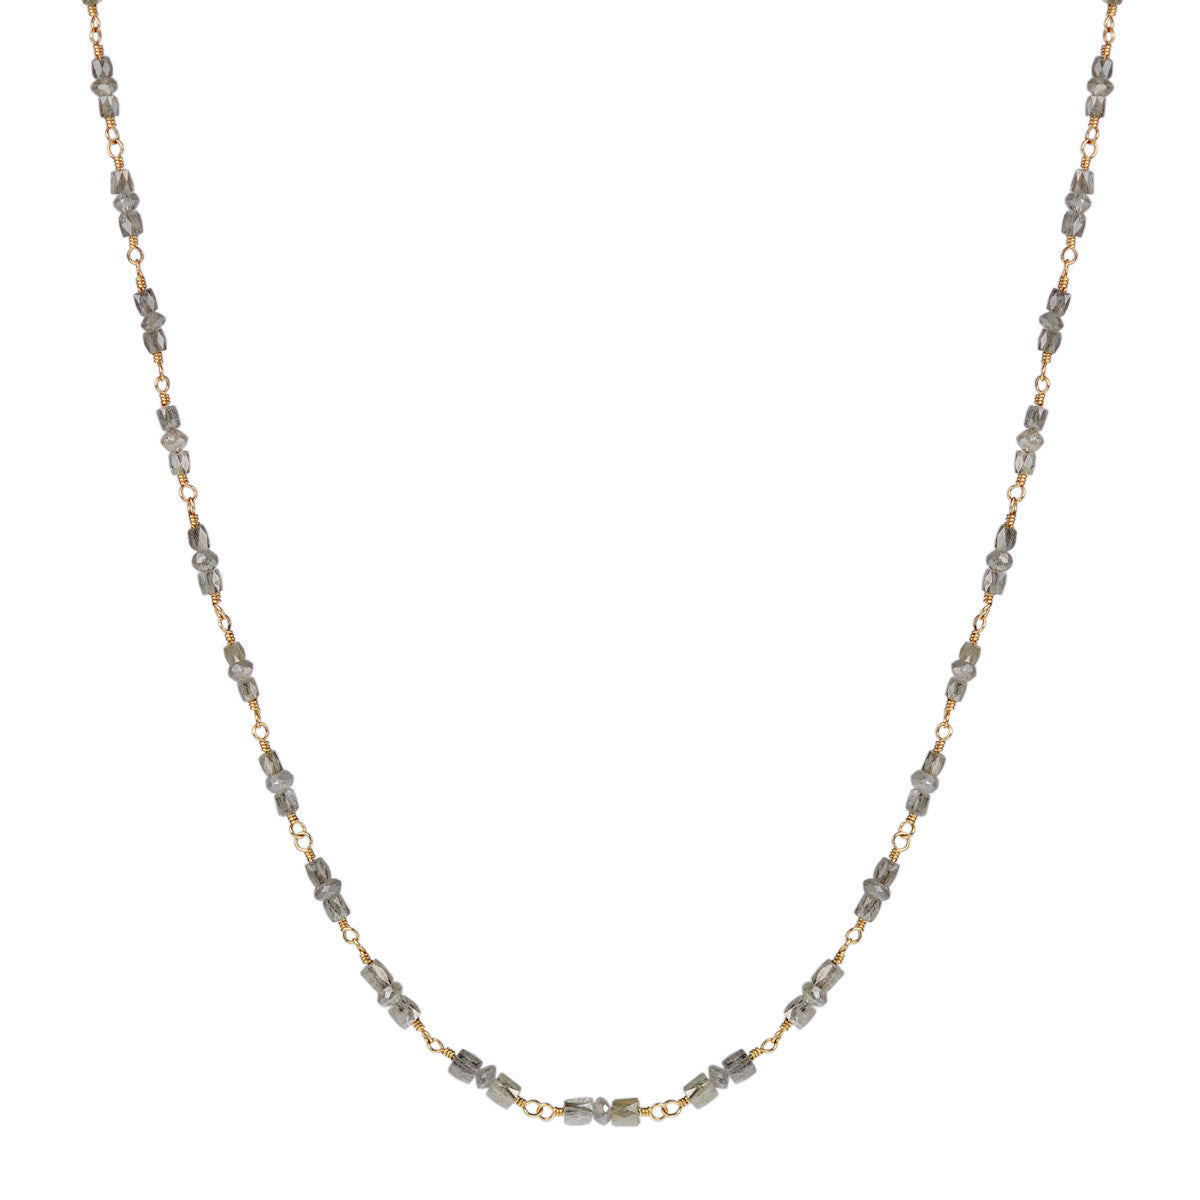 18K Gold Full Grey Diamond Station Chain